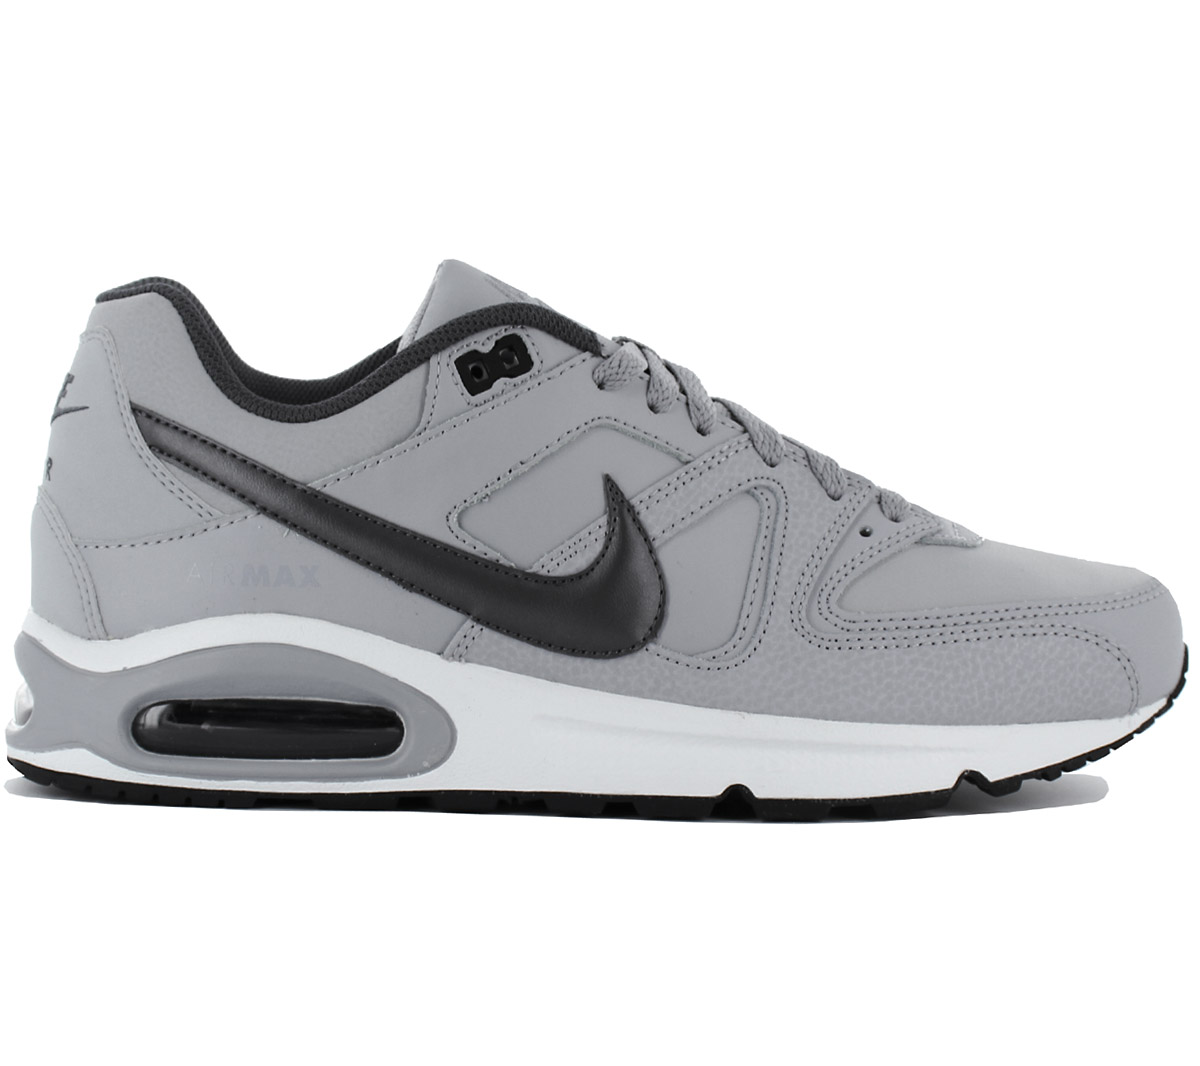 Details about Nike air max Command Leather Men's Sneaker Shoes 749760 012 Leather Grey New